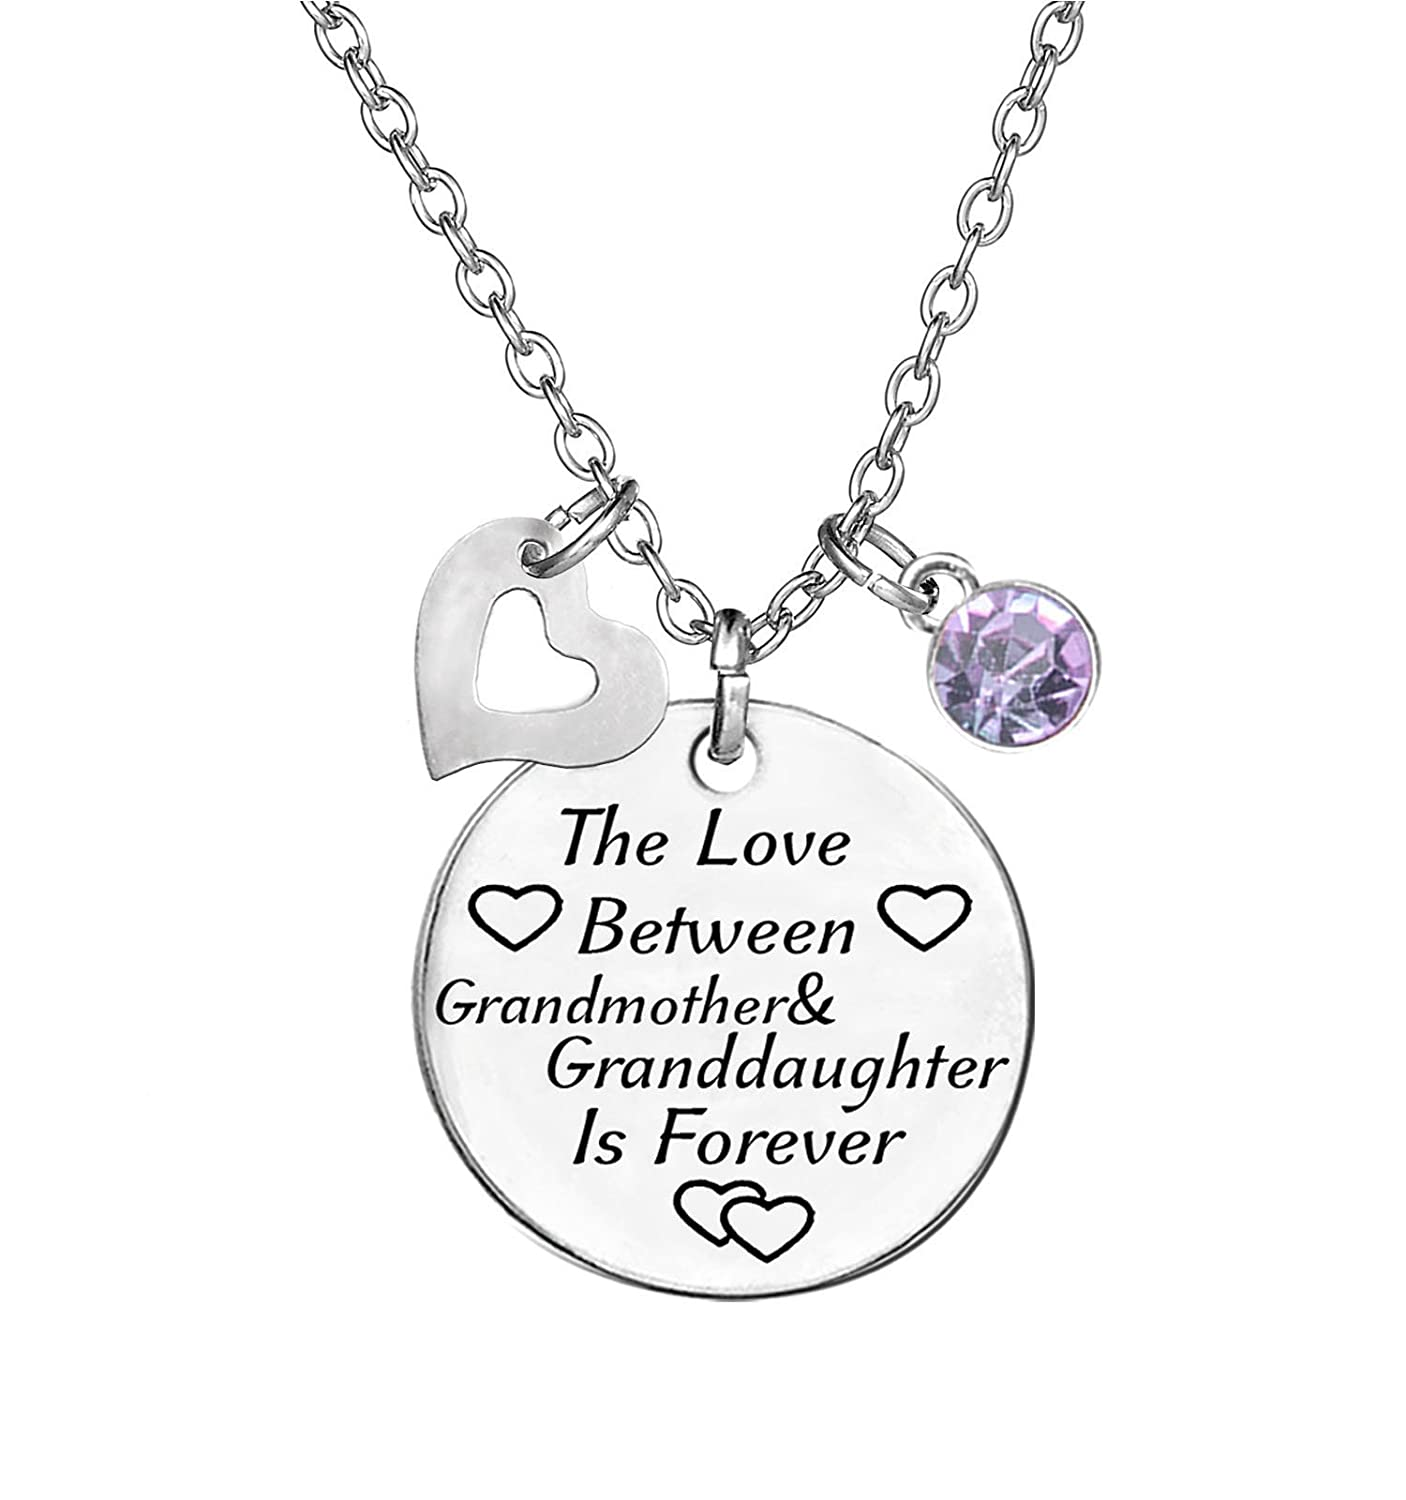 TISDA Birthstone Crystals Necklace, The Love between Grandmother and Granddaughter is Forever Necklace Family Jewelry Christmas Gift